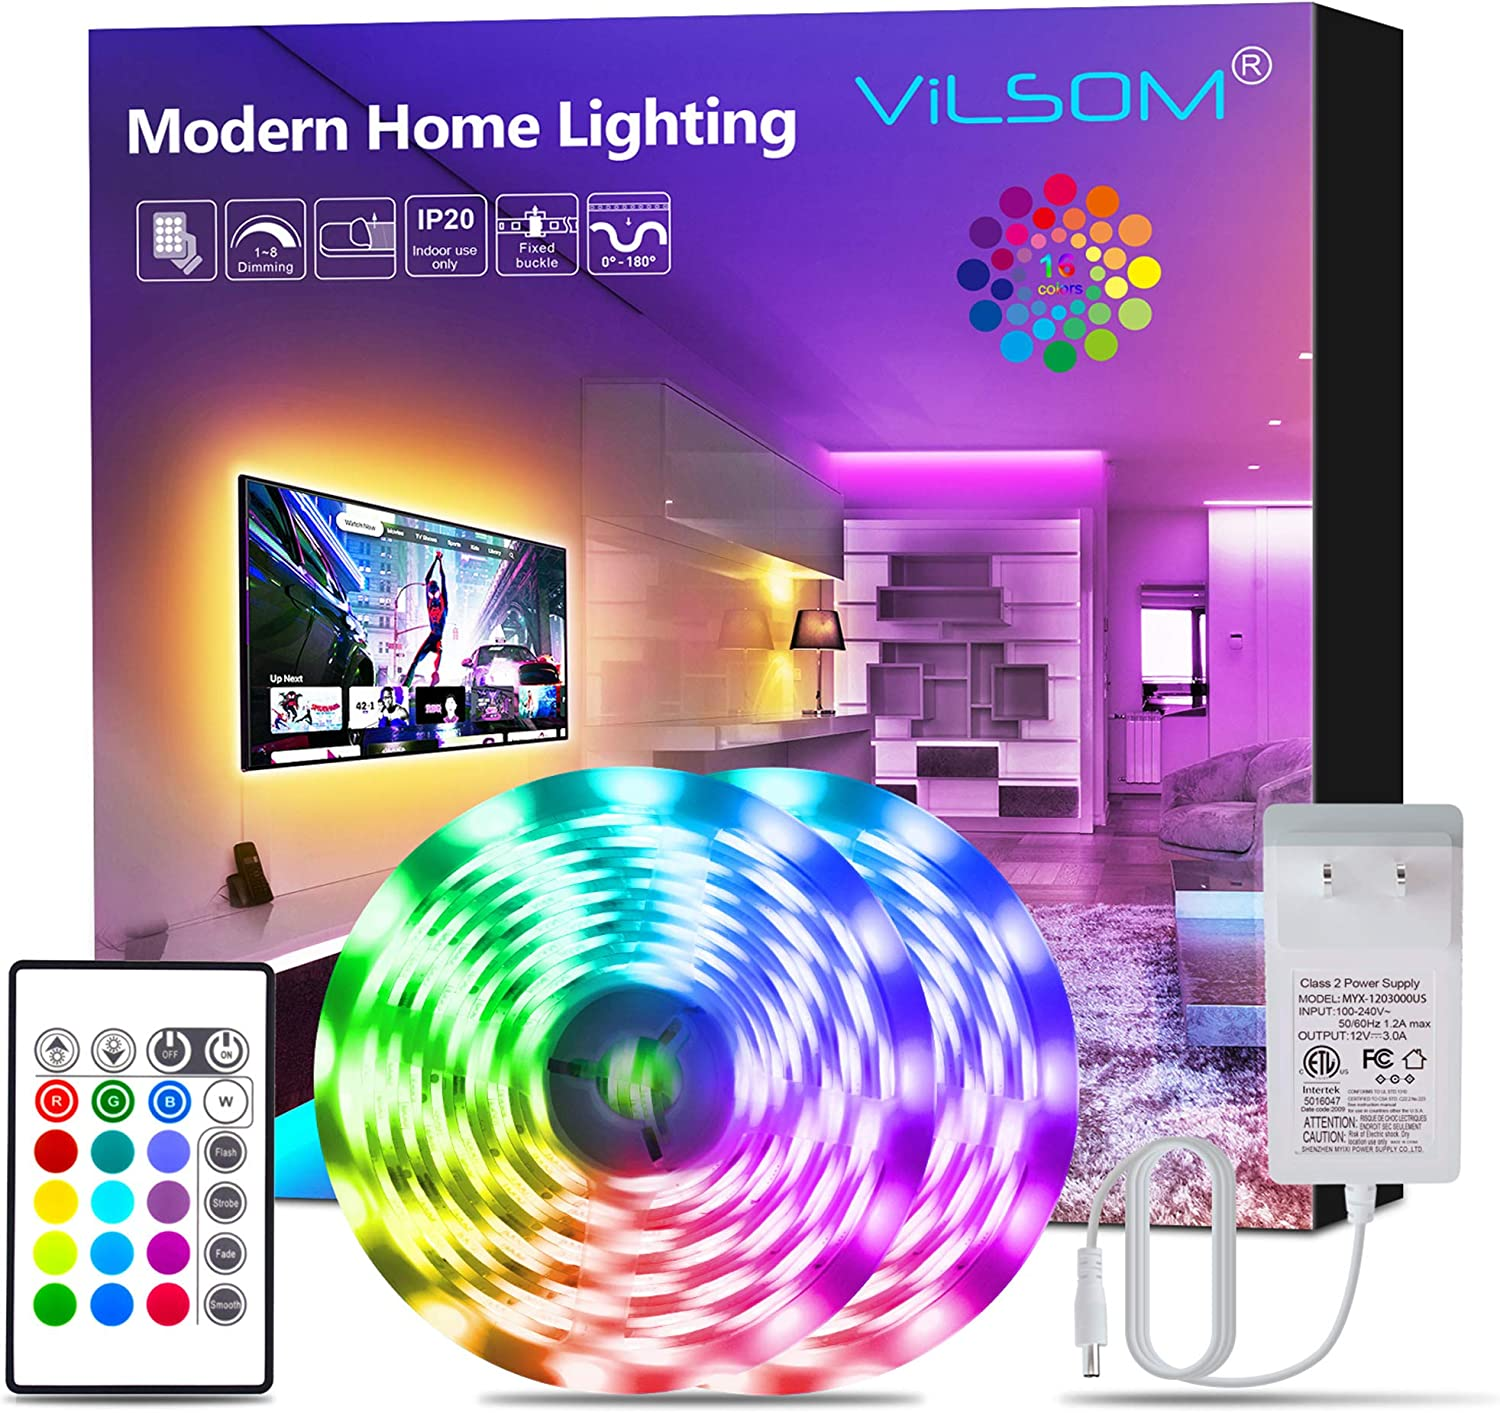 Led Strip Lights, ViLSOM 32.8 Feet RGB Led Light Strip with Remote and 12V Power Supply, SMD 5050 Led Lights for Bedroom, Room, TV, Kitchen and Home Decoration Bias Lighting, 2 Rolls of 16.4 Feet